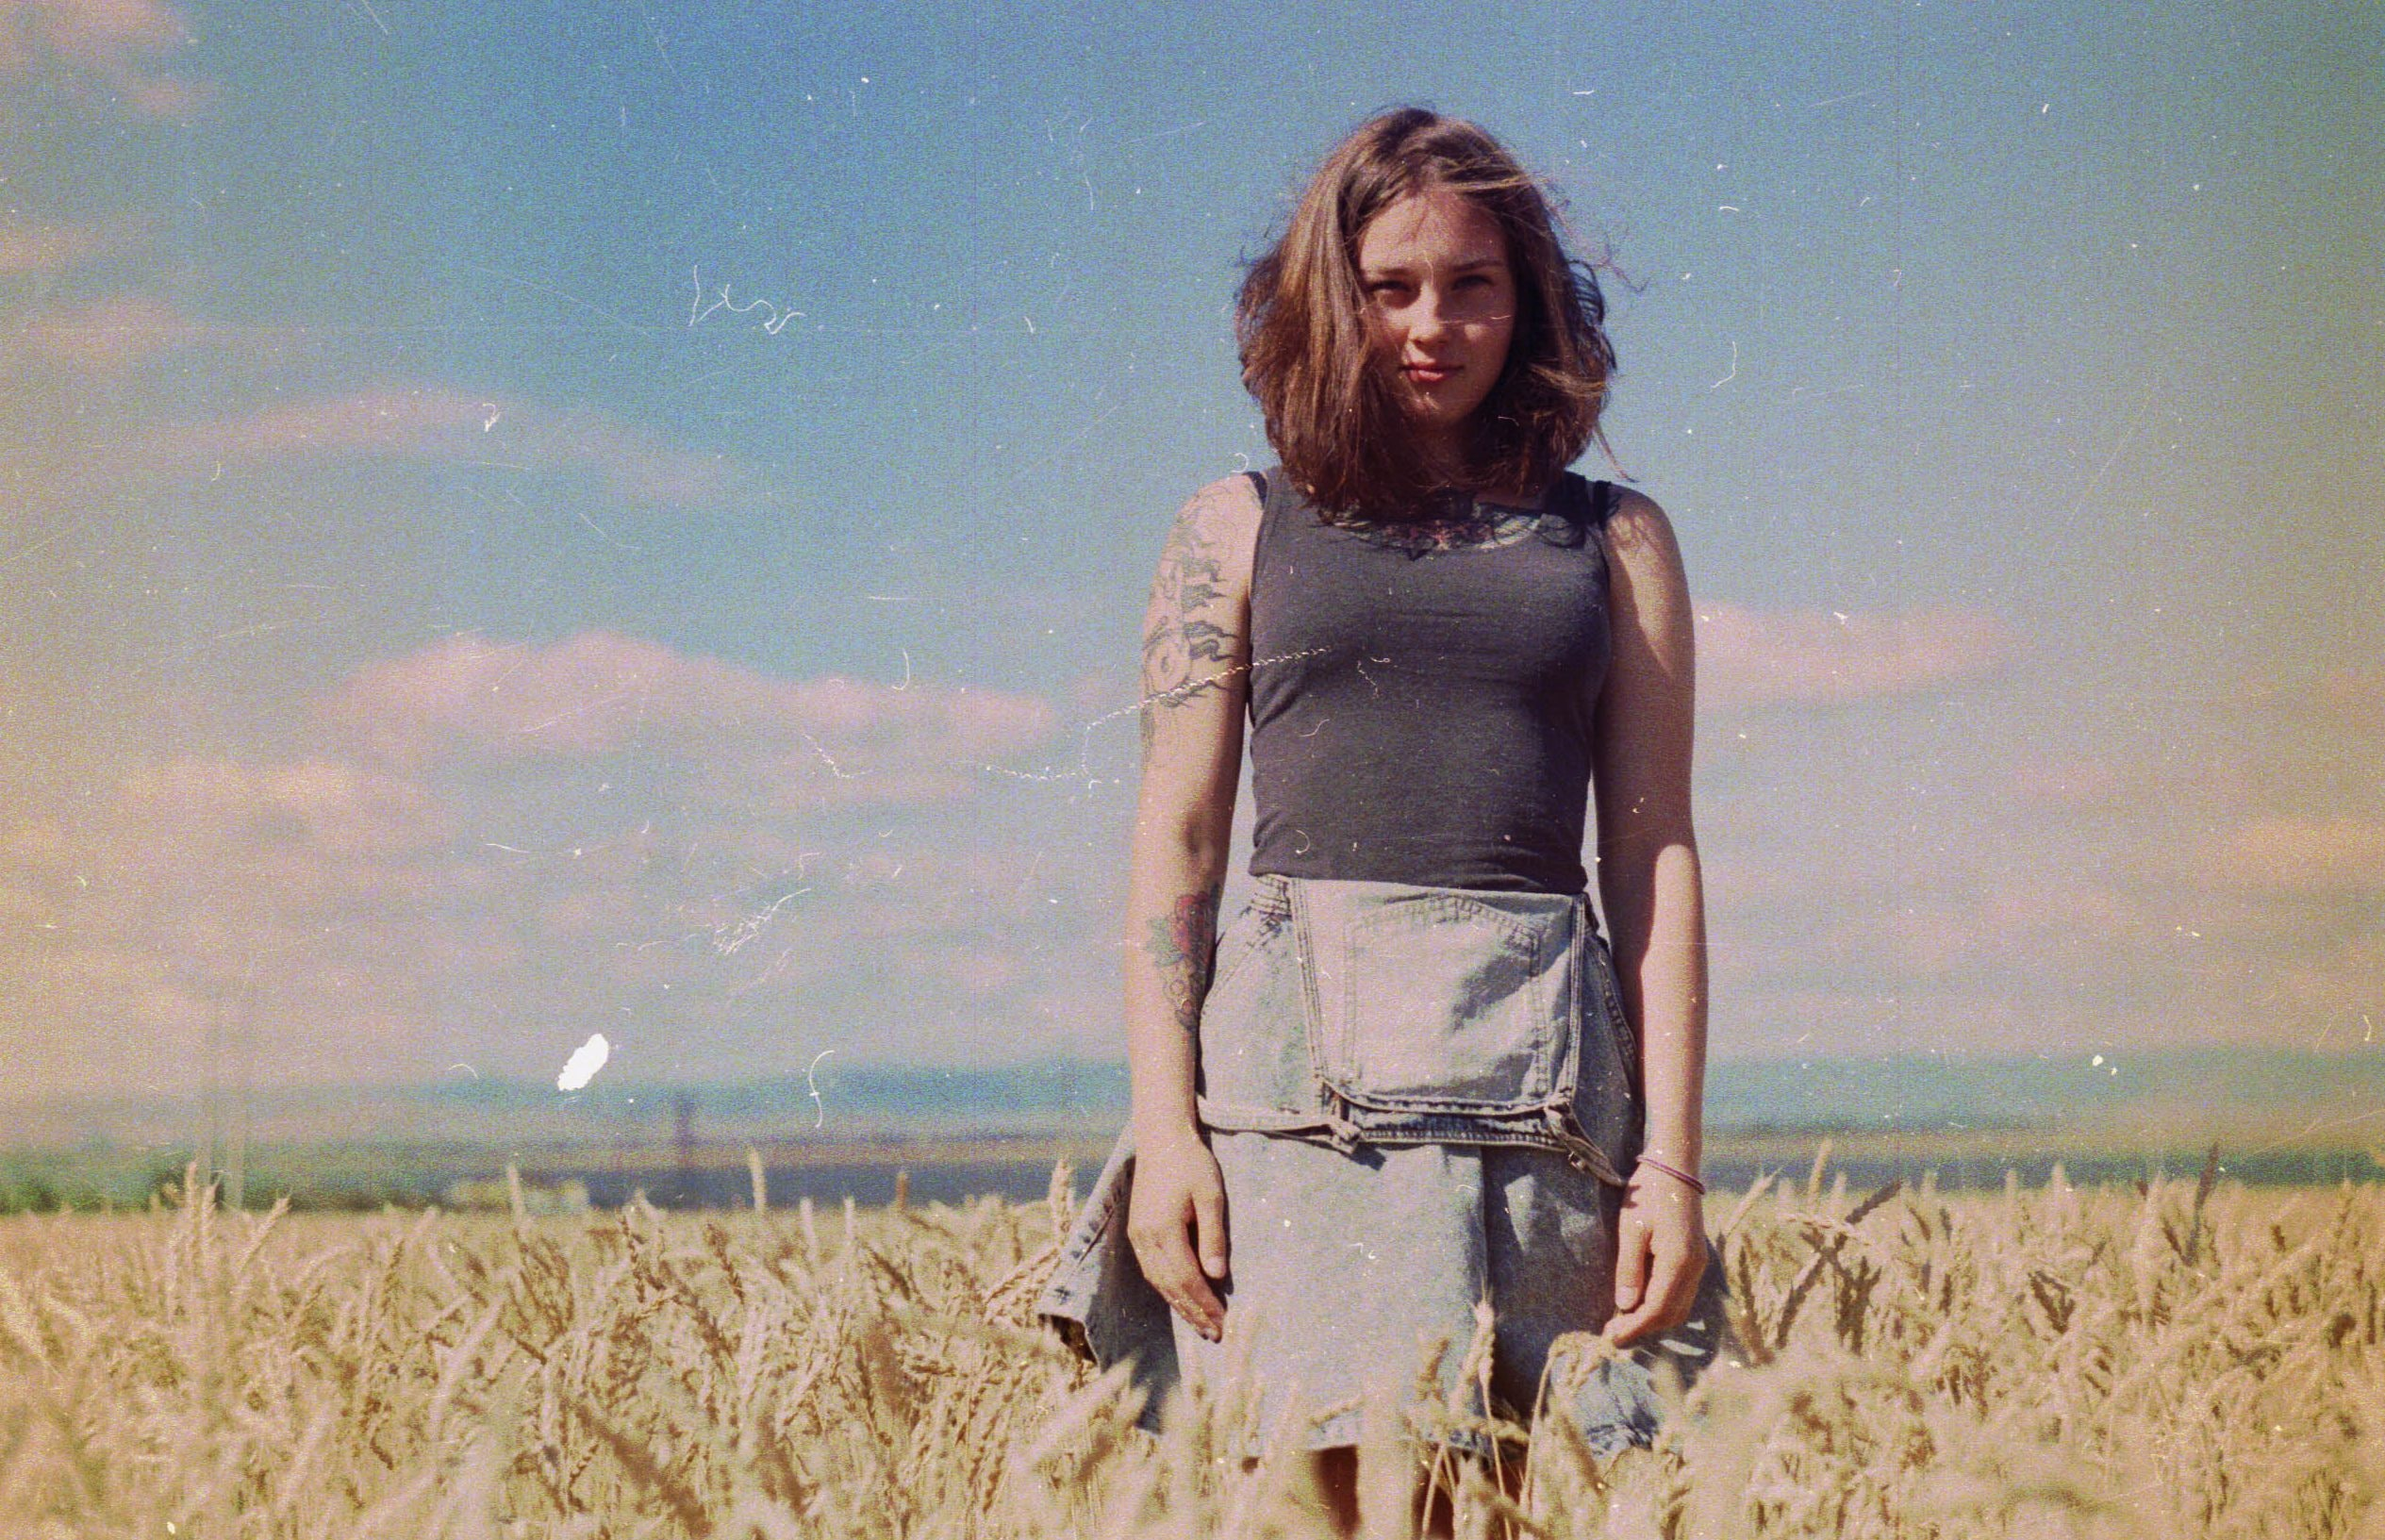 A tattooed woman in a denim skirt stands in a wheat field in the Ural Mountains